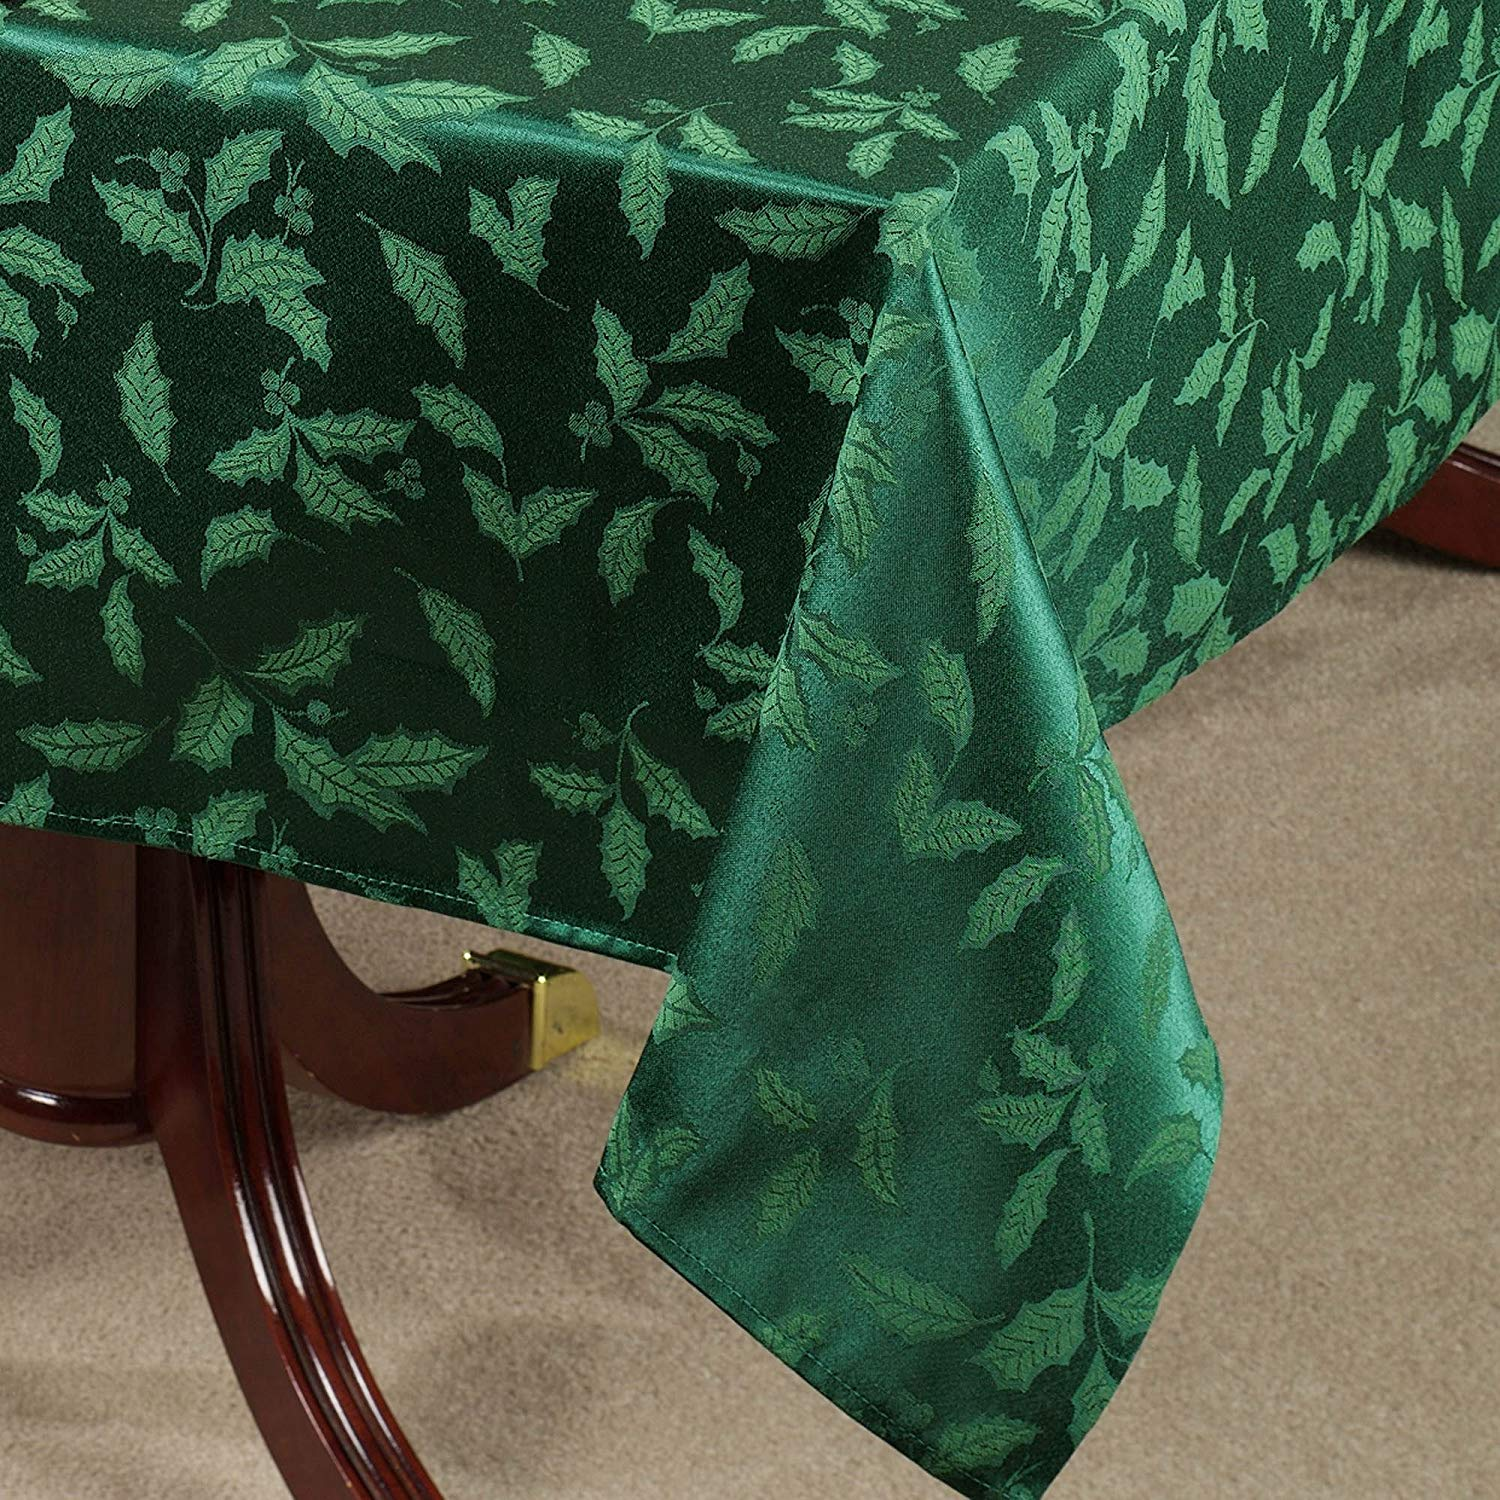 lenox holly damask christmas tablecloth oblong round accent green home kitchen distressed wood coffee table holiday runner bedroom side drawers junior drum stool purple furniture